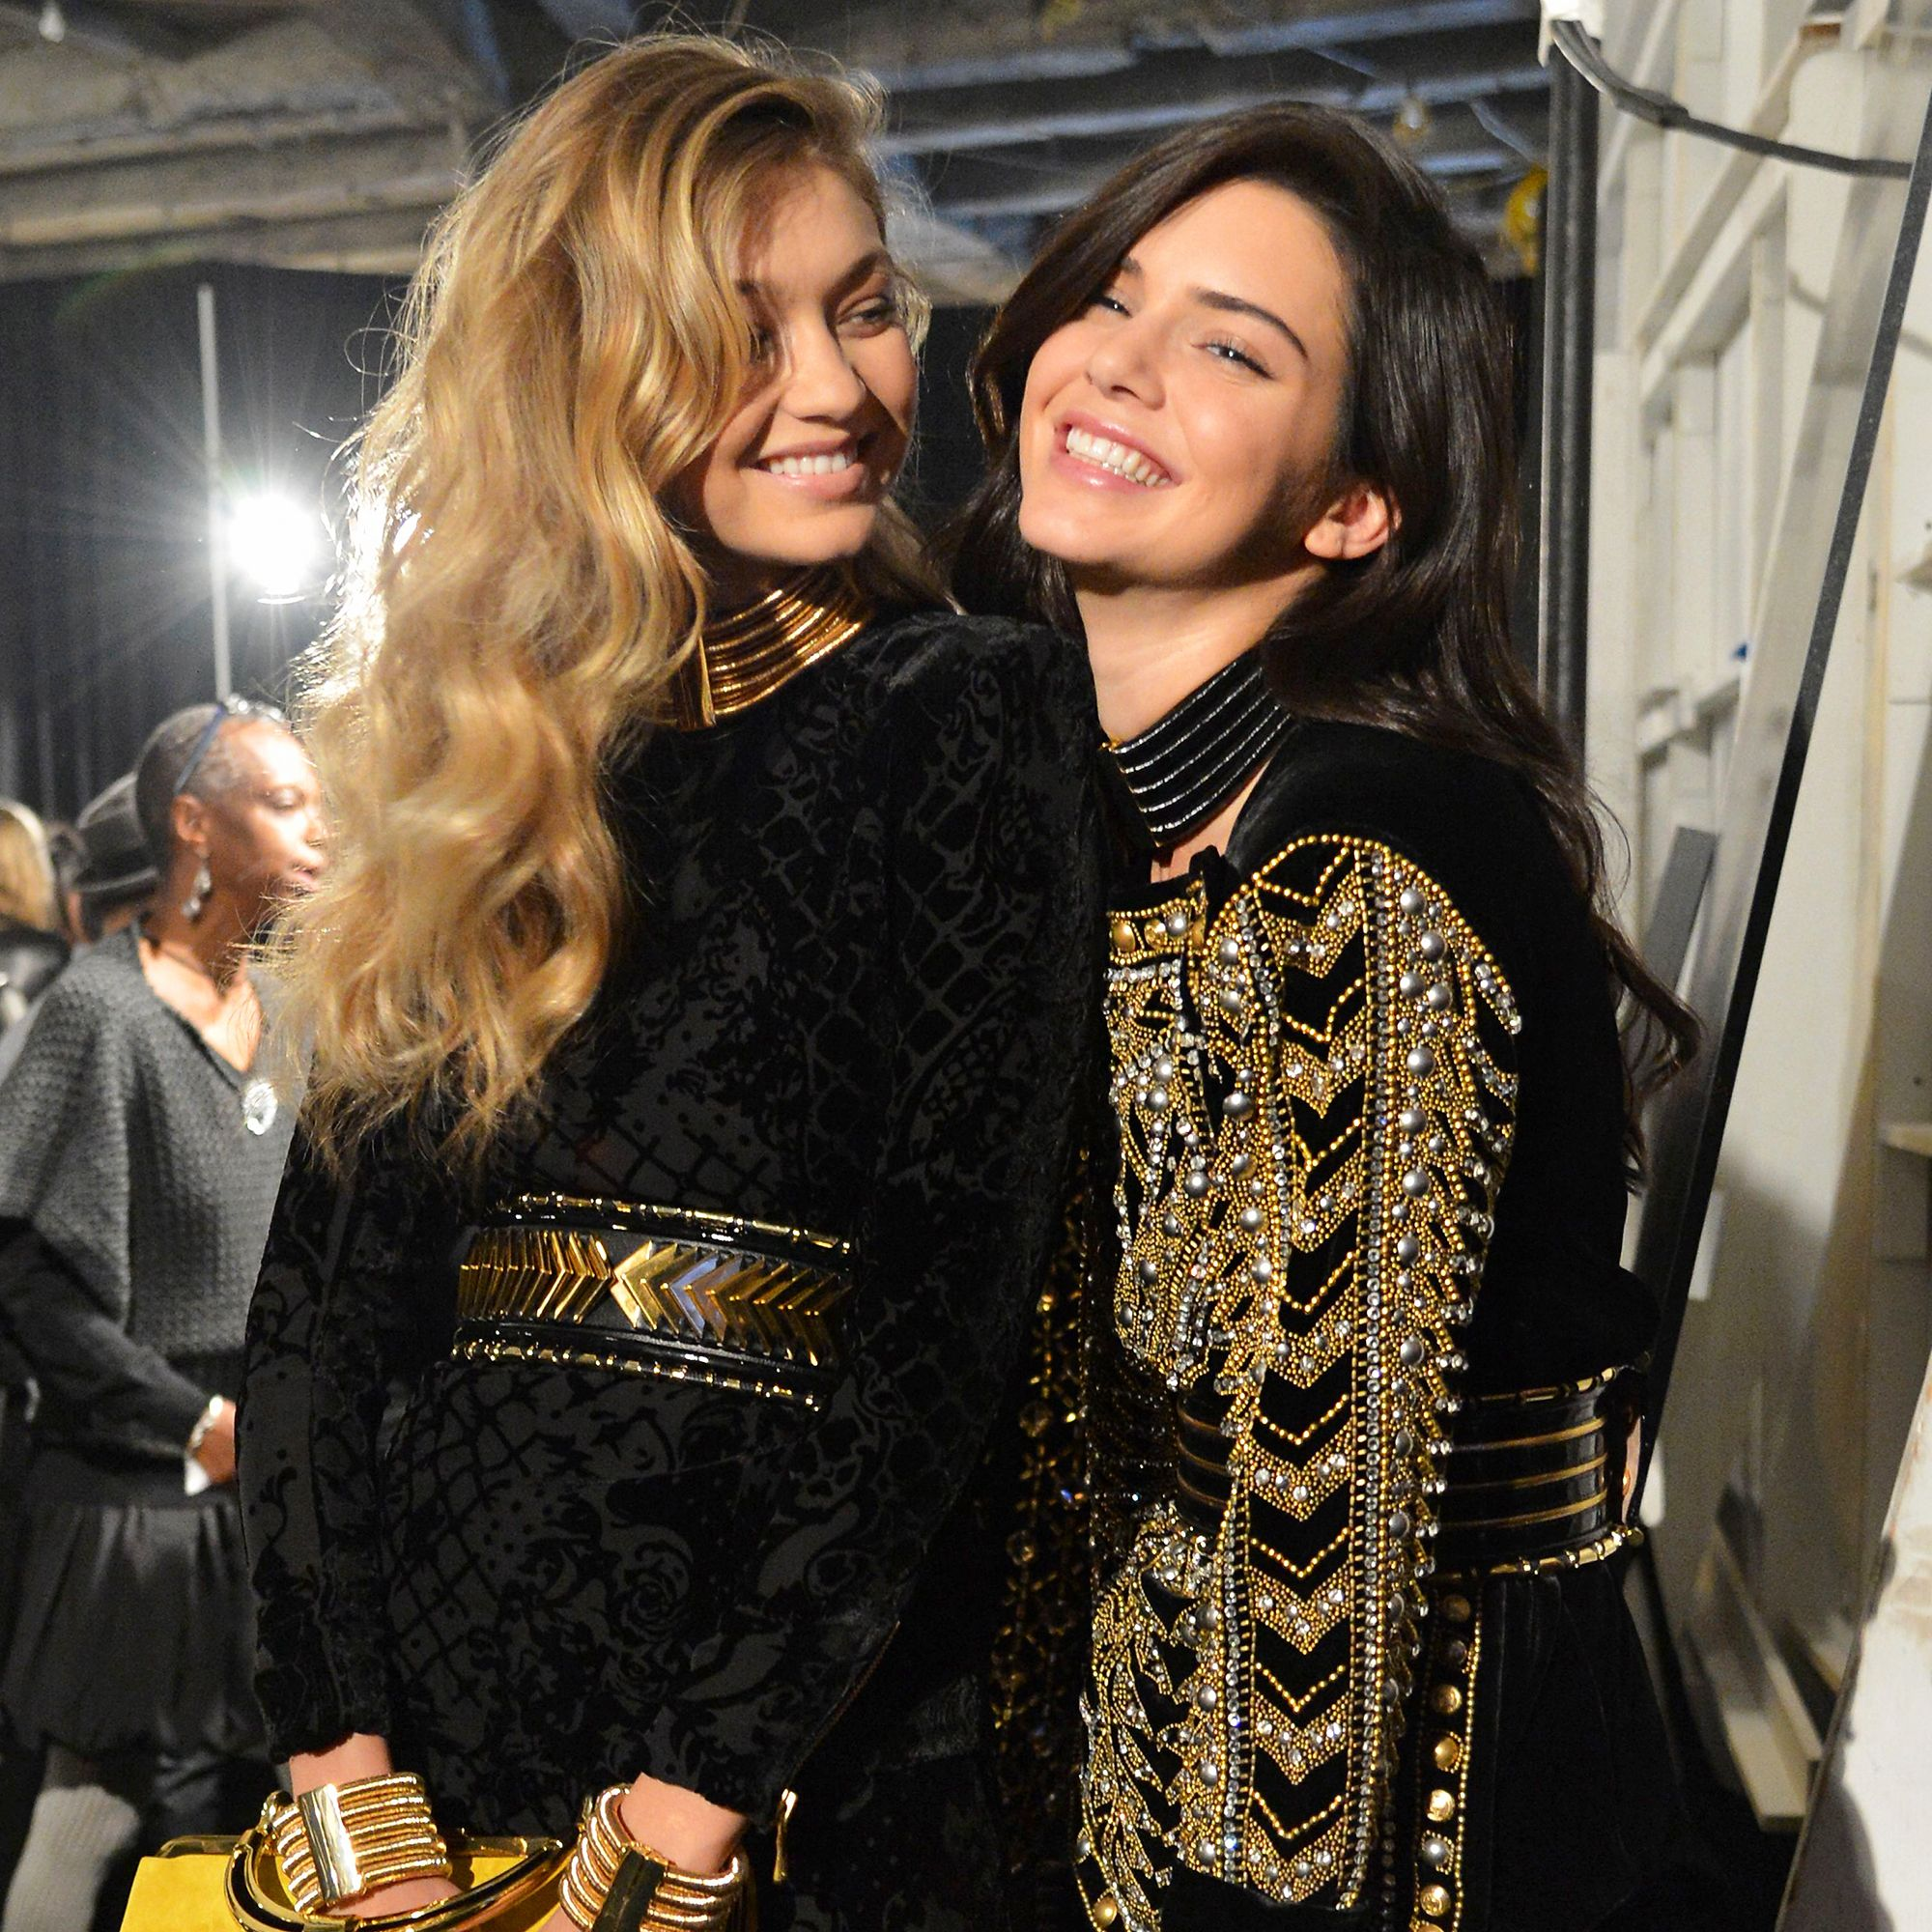 Looks Like Gigi Hadid and Kendall Jenner Are Confirmed to Walk the Victoria's Secret Fashion Show!